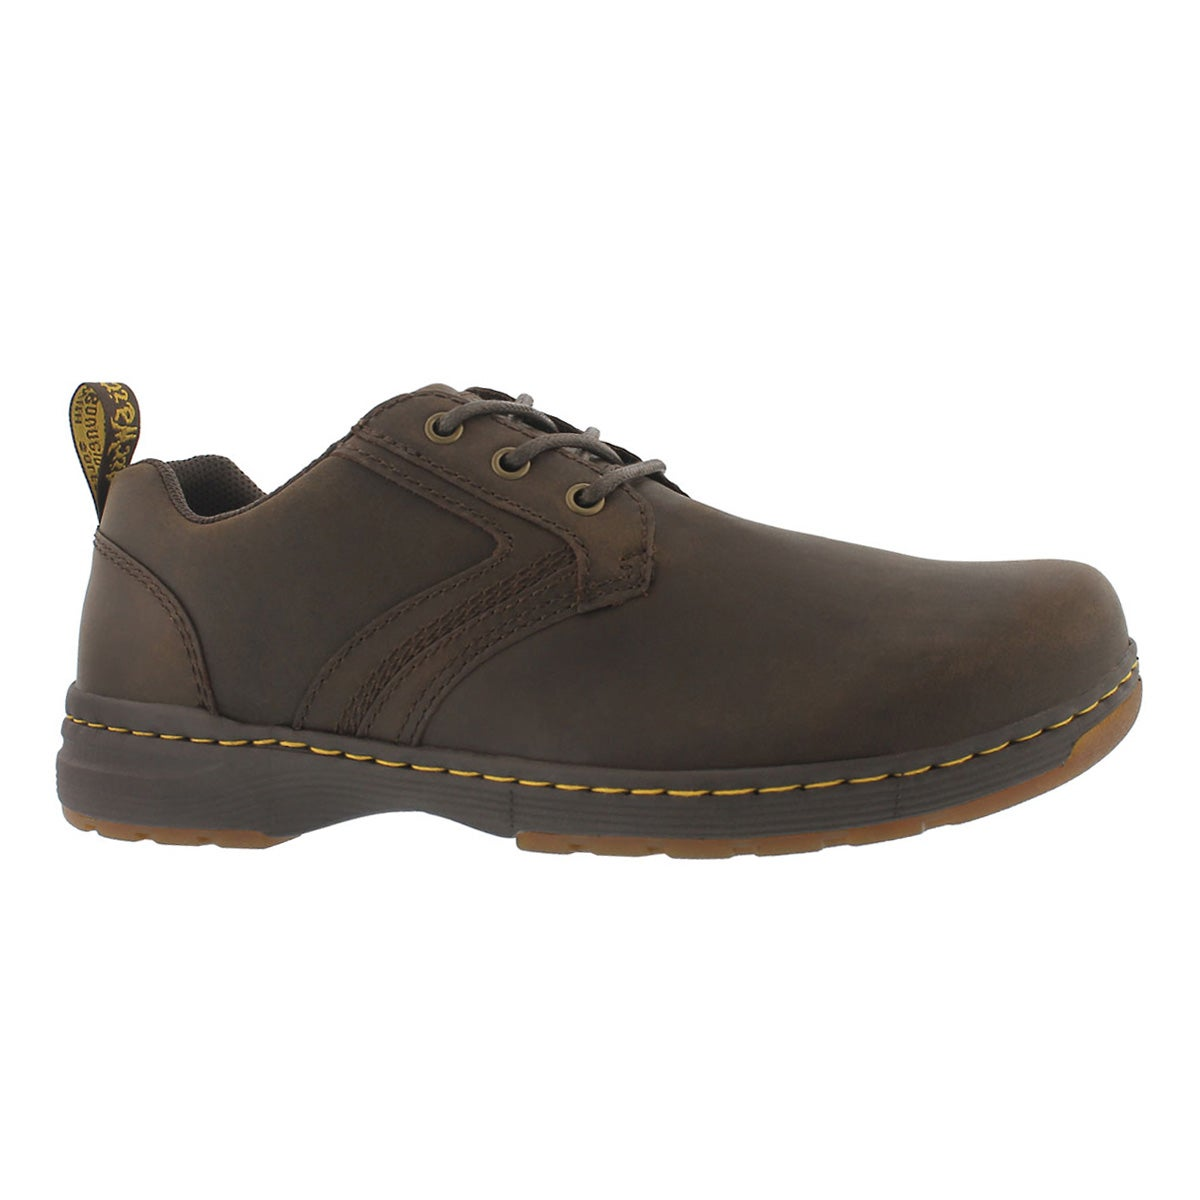 Men's GILMER brown laceup casual oxford